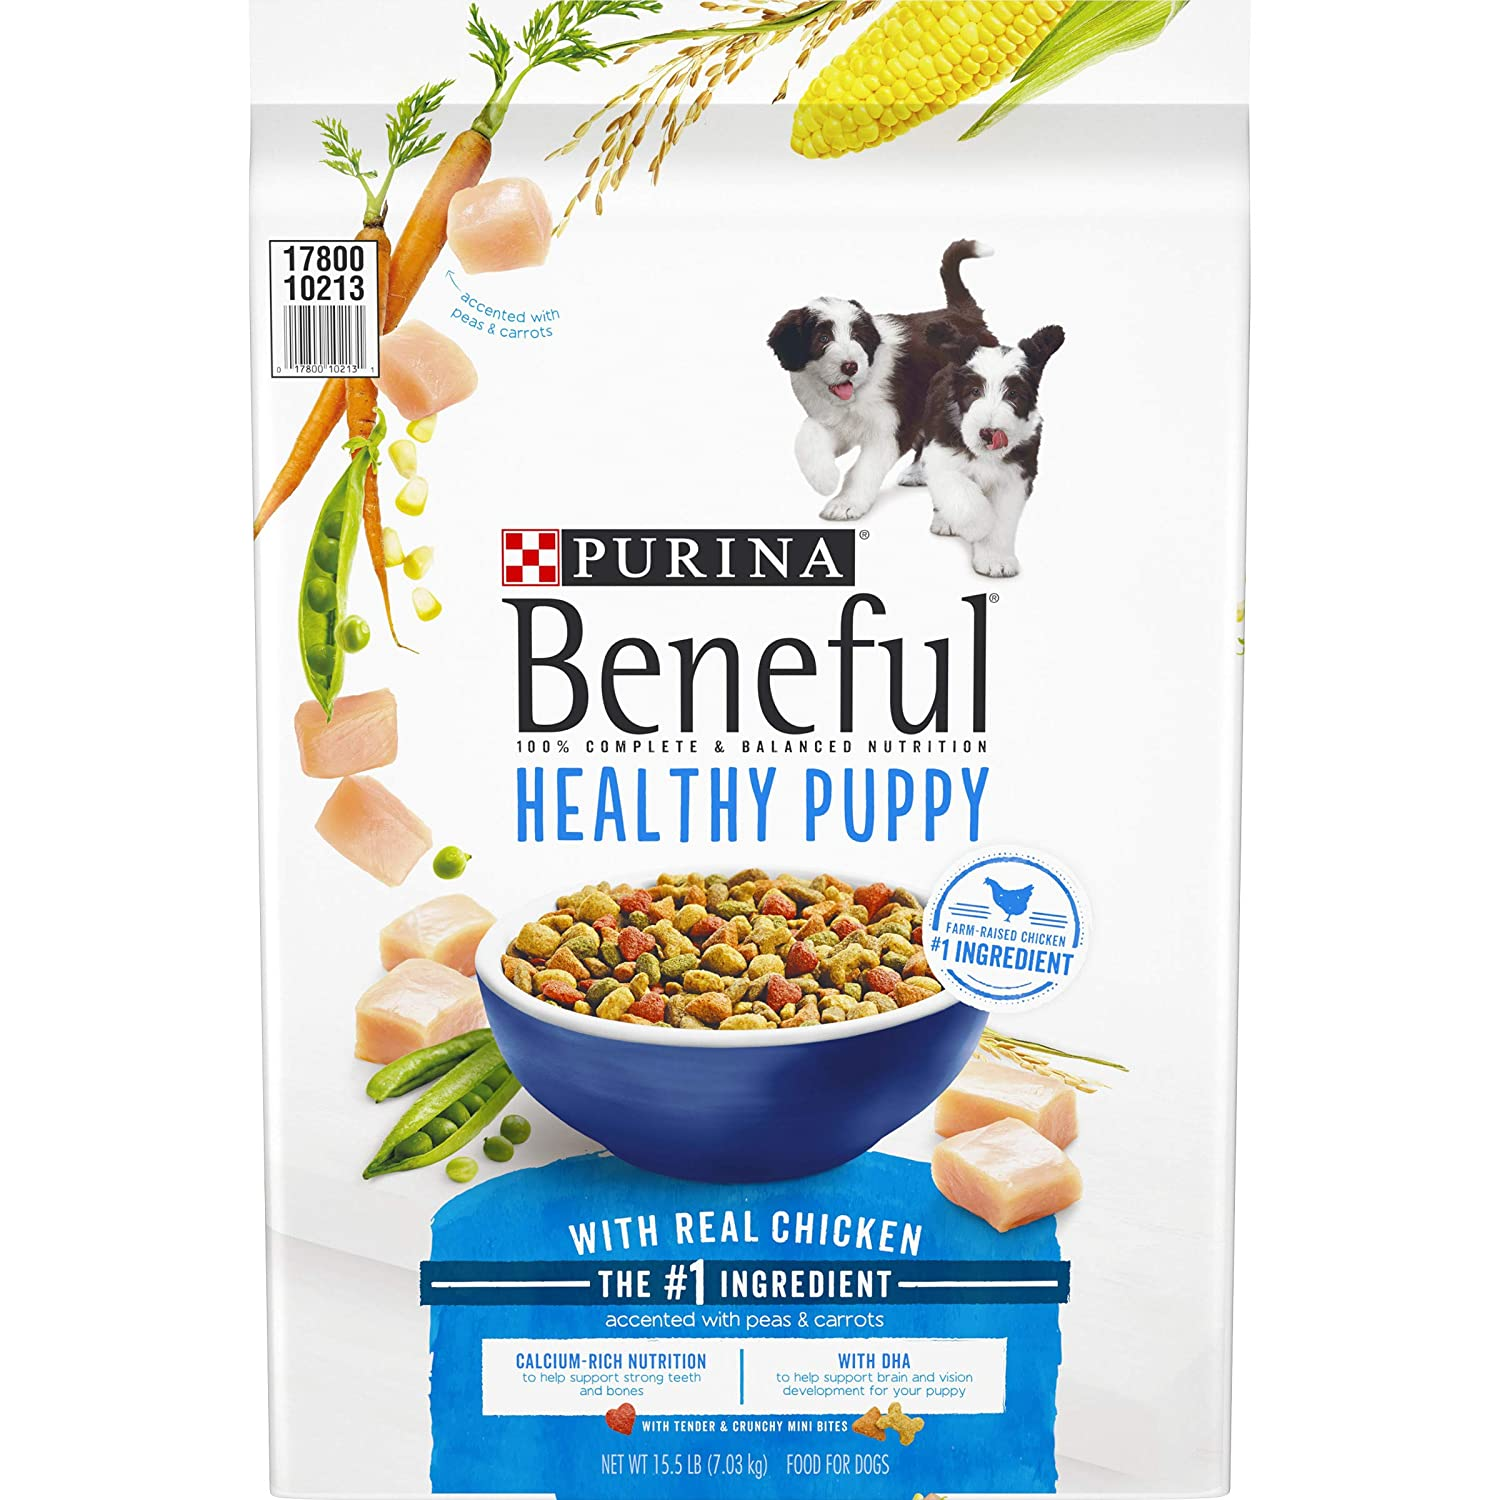 9. Purina Beneful Healthy Puppy Dry Dog Food